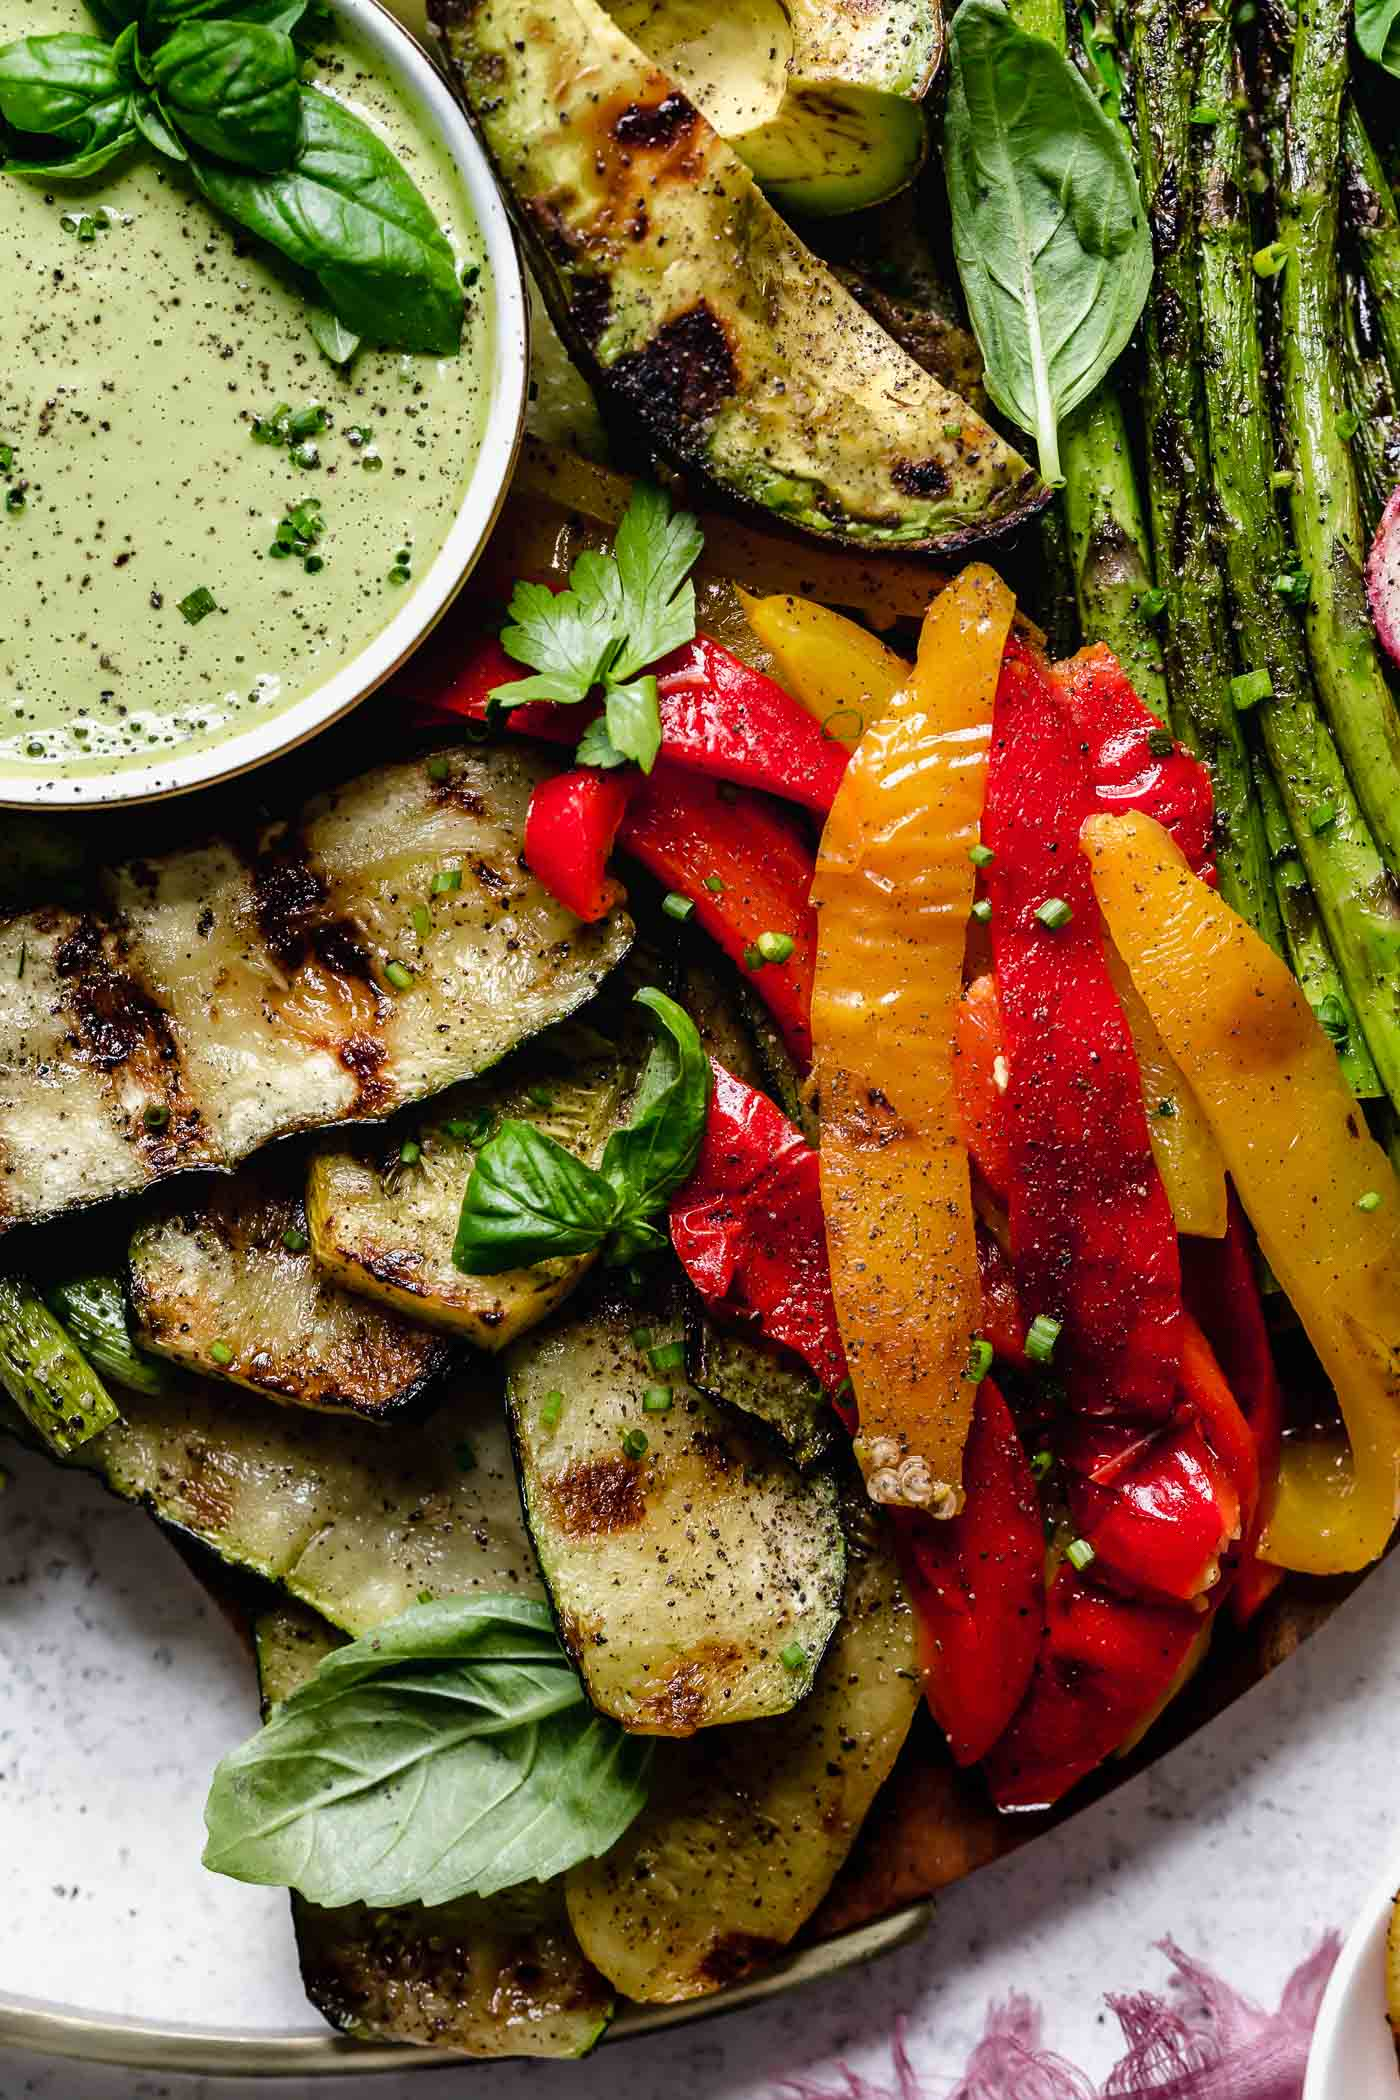 easy vegan grilled vegetable platter recipe (with cashew goddess sauce!) | 10 minutes to prep this easy vegan grilled vegetable platter recipe (with cashew goddess sauce!). the best vegan grilled recipe that EVERYONE will love! #playswellwithbutter #grilledvegetableplatter #grilledveggies #grilledvegetables #easygrilledvegetables #easyvegetarianrecipe #easyveganrecipe #dairyfree #plantbasedrecipes